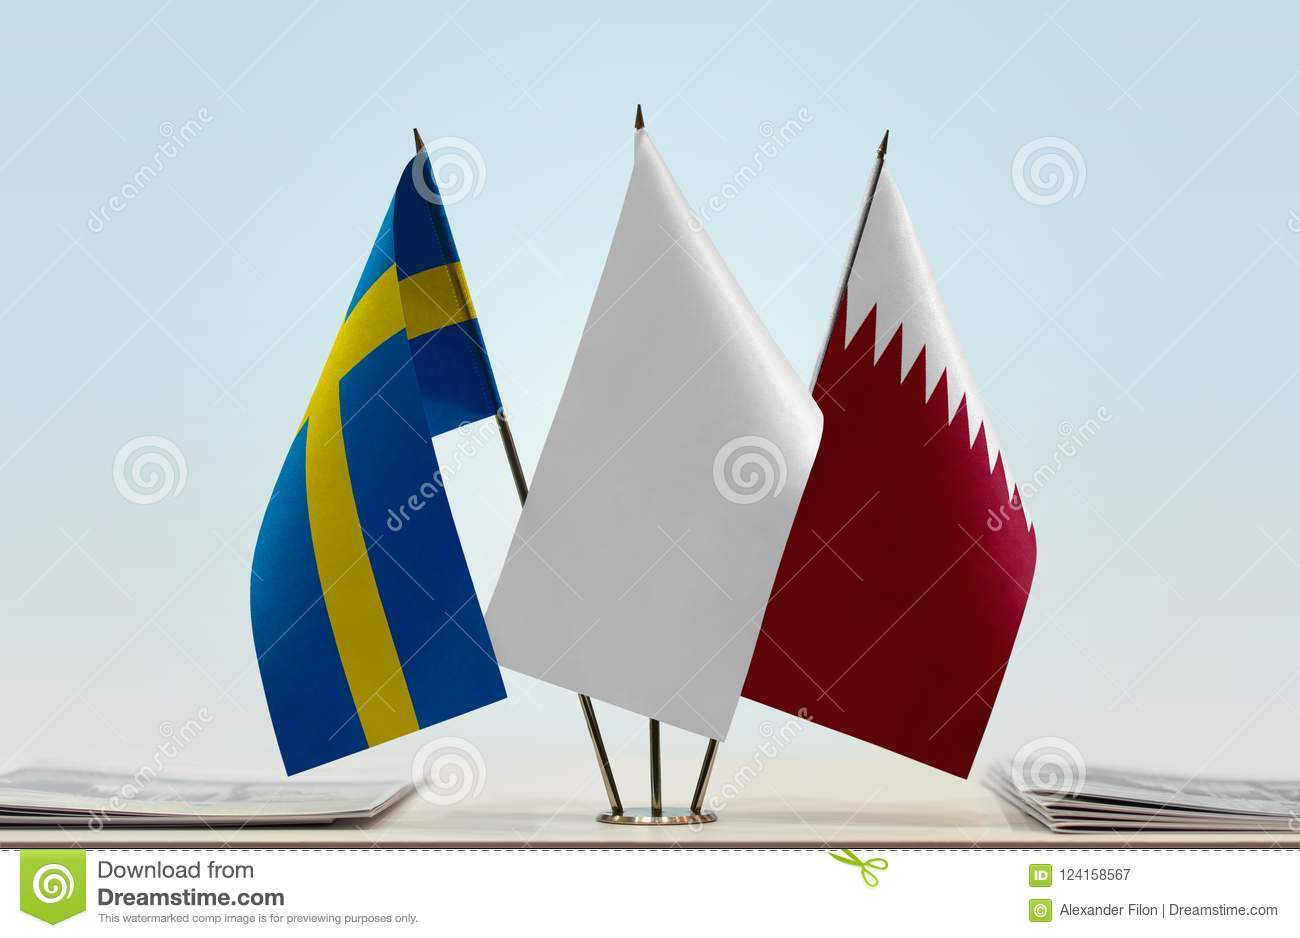 Flags of Sweden and Qatar